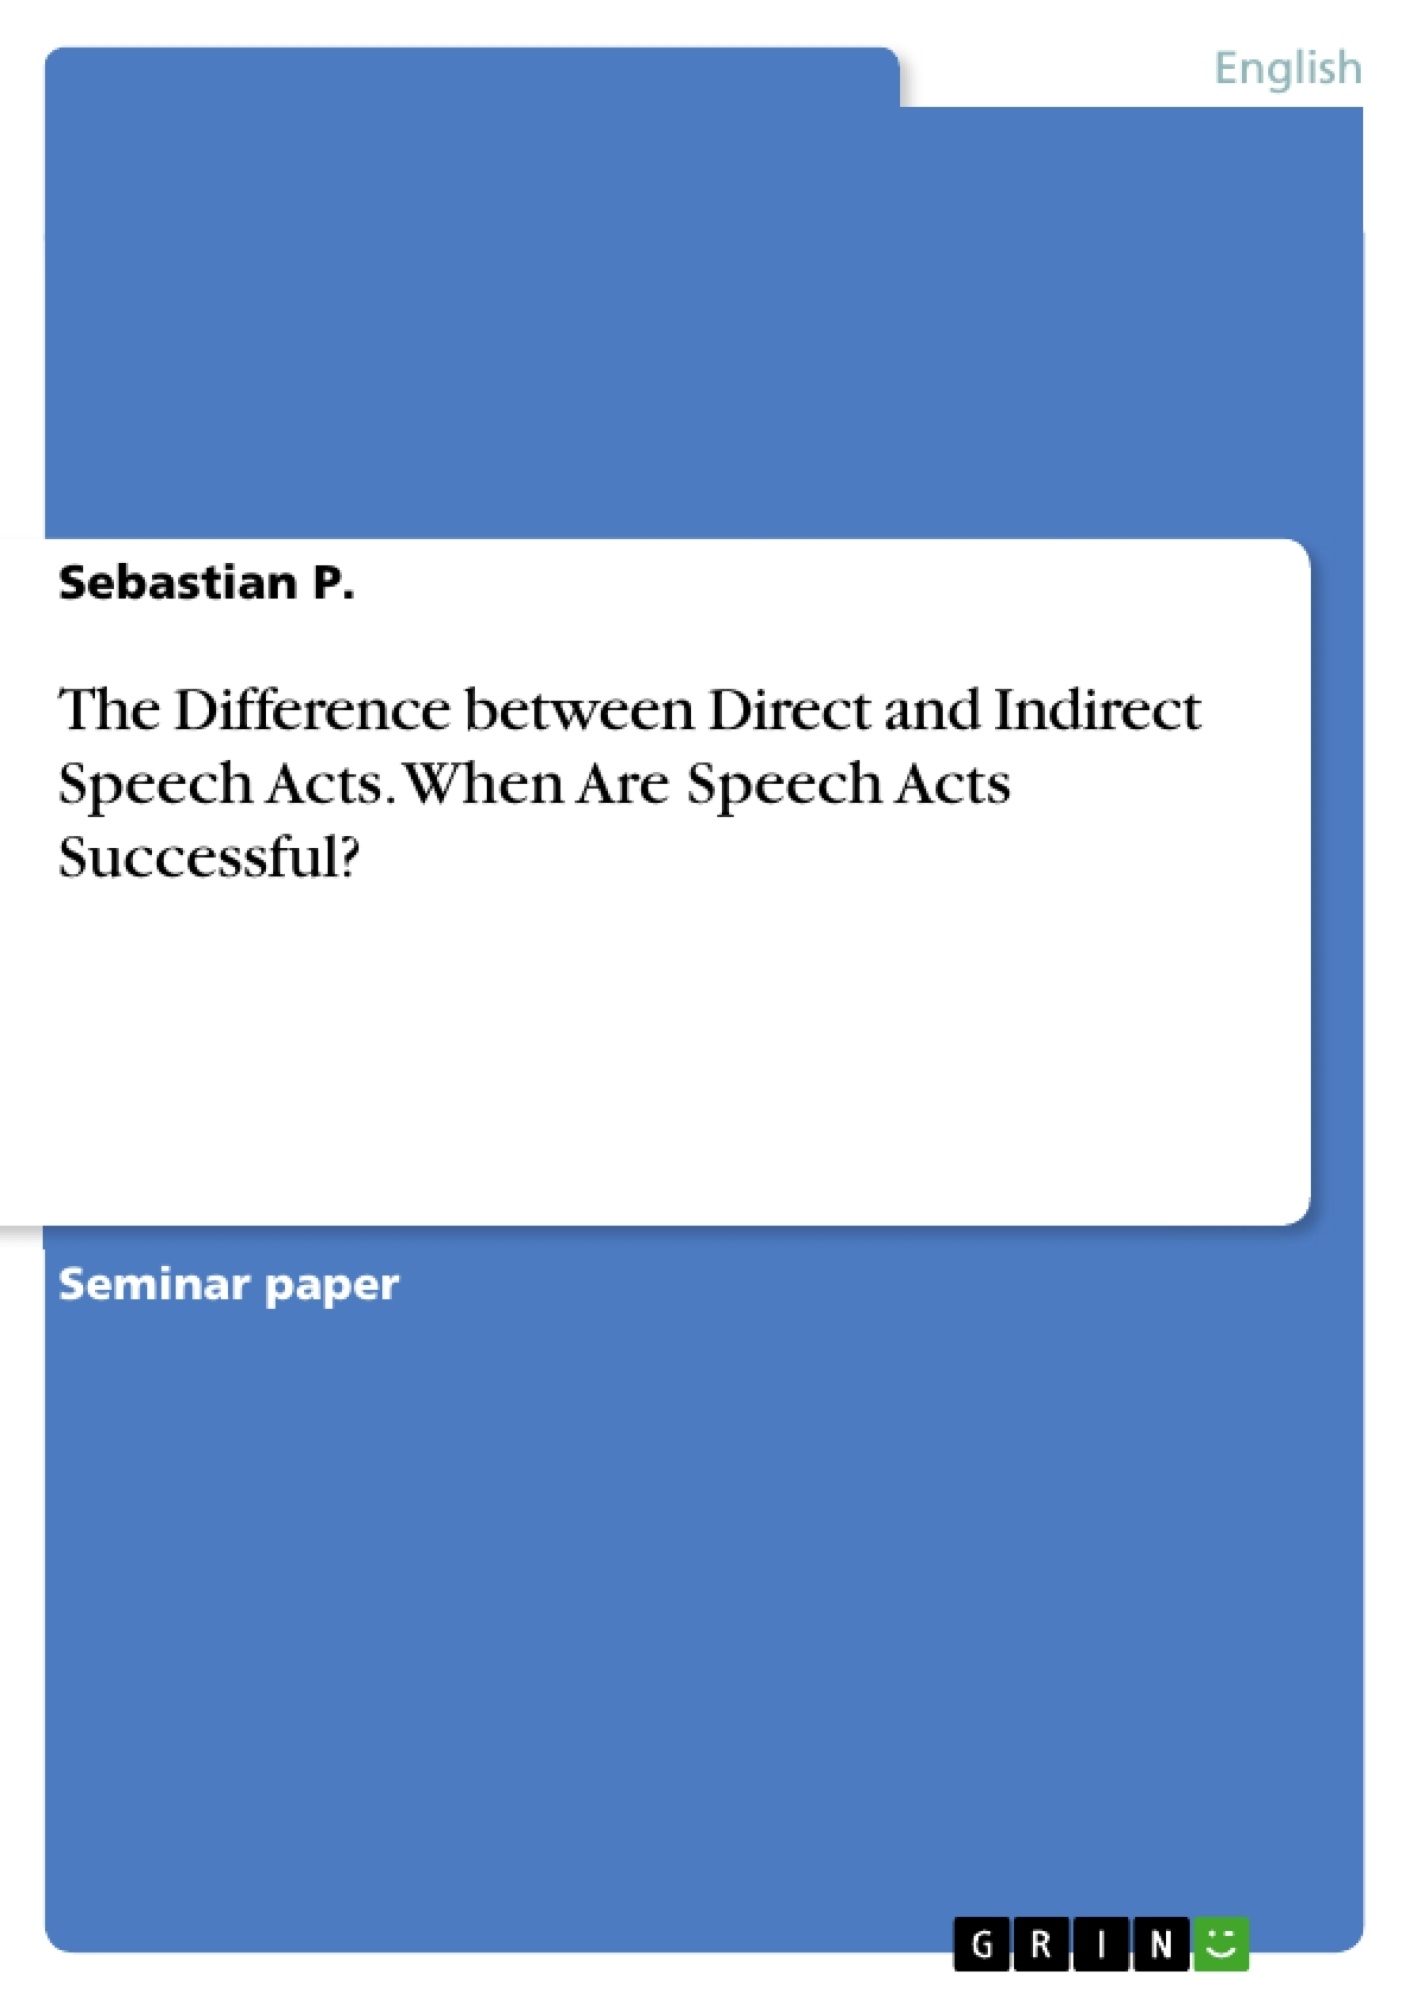 Title: The Difference between Direct and Indirect Speech Acts. When Are Speech Acts Successful?